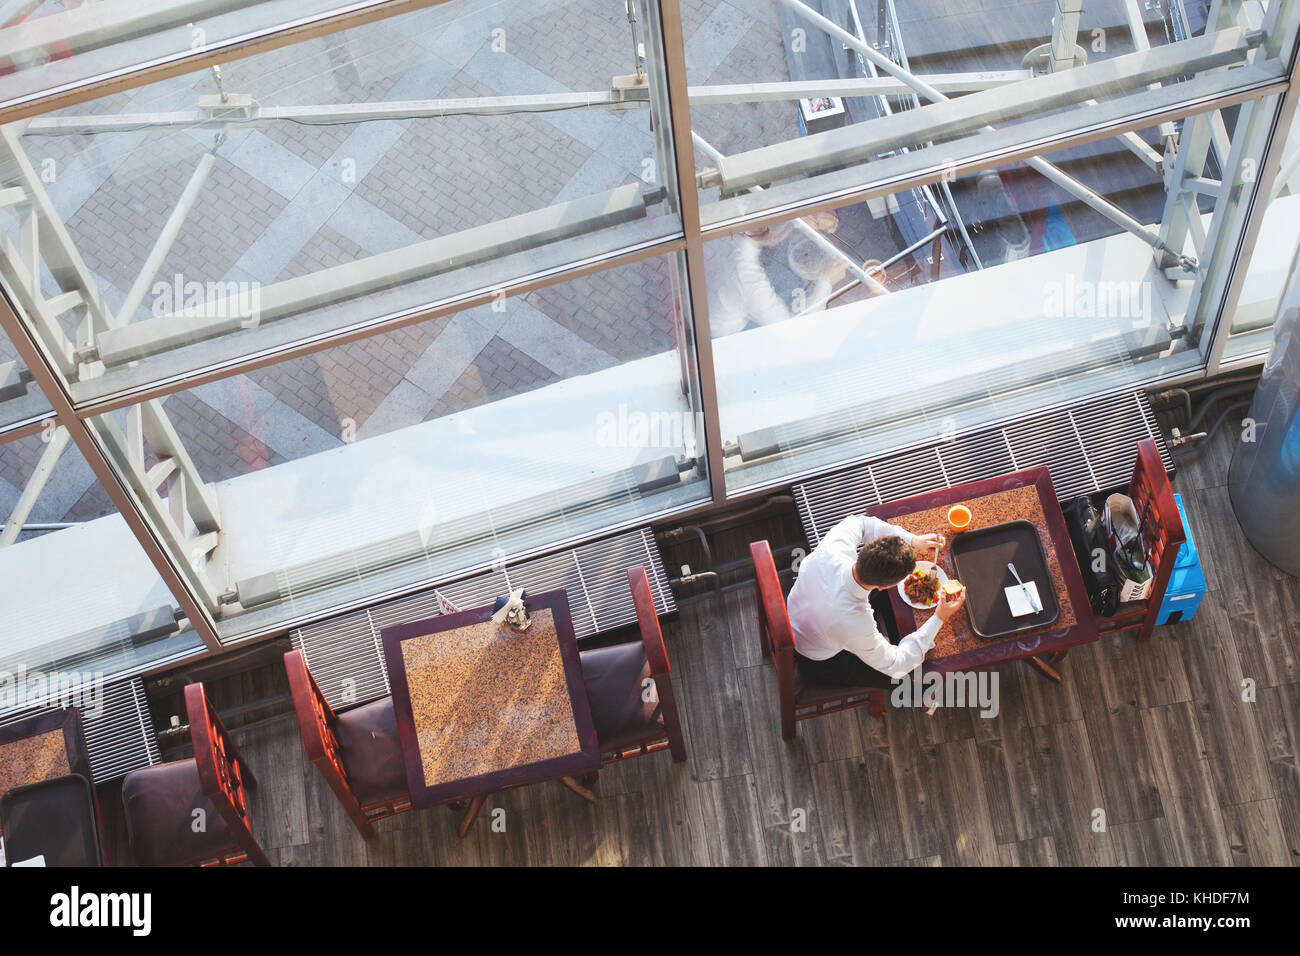 business lunch, top view of businessman eating in cafe, high angle of canteen for employees - Stock Image